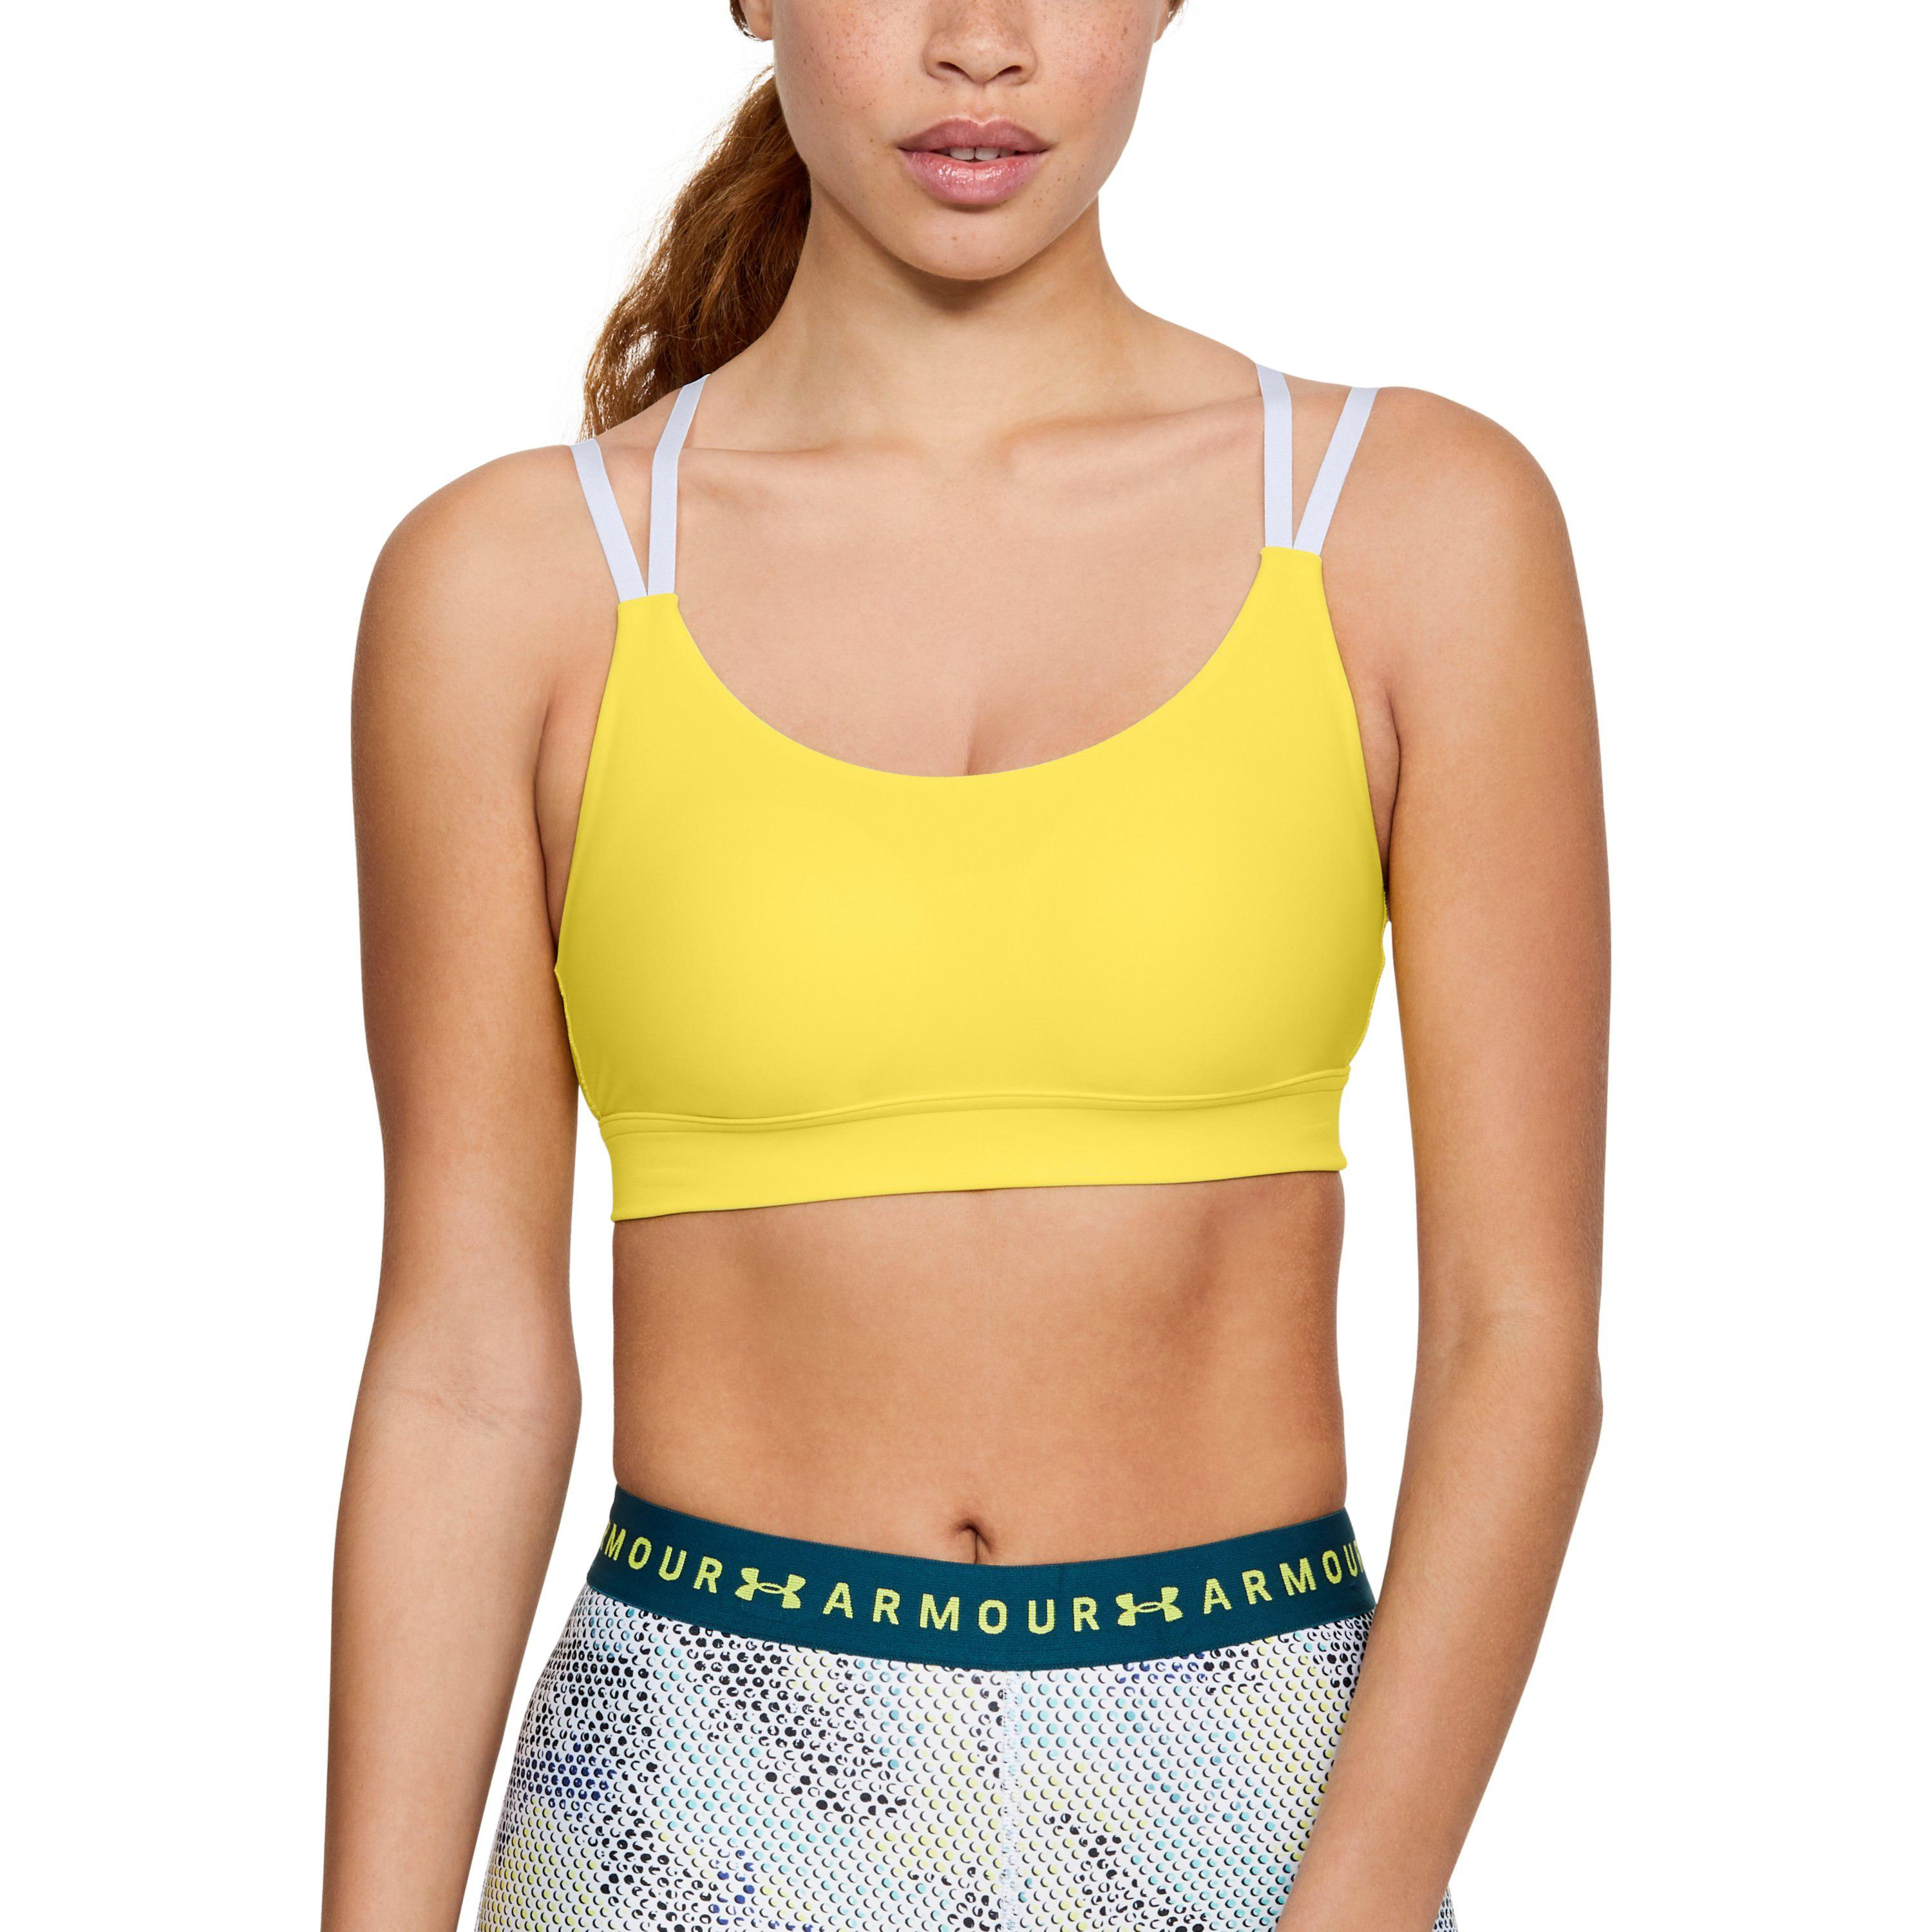 8d164f0d294d7 Lyst - Under Armour Vanish Low Impact Sports Bra in Yellow